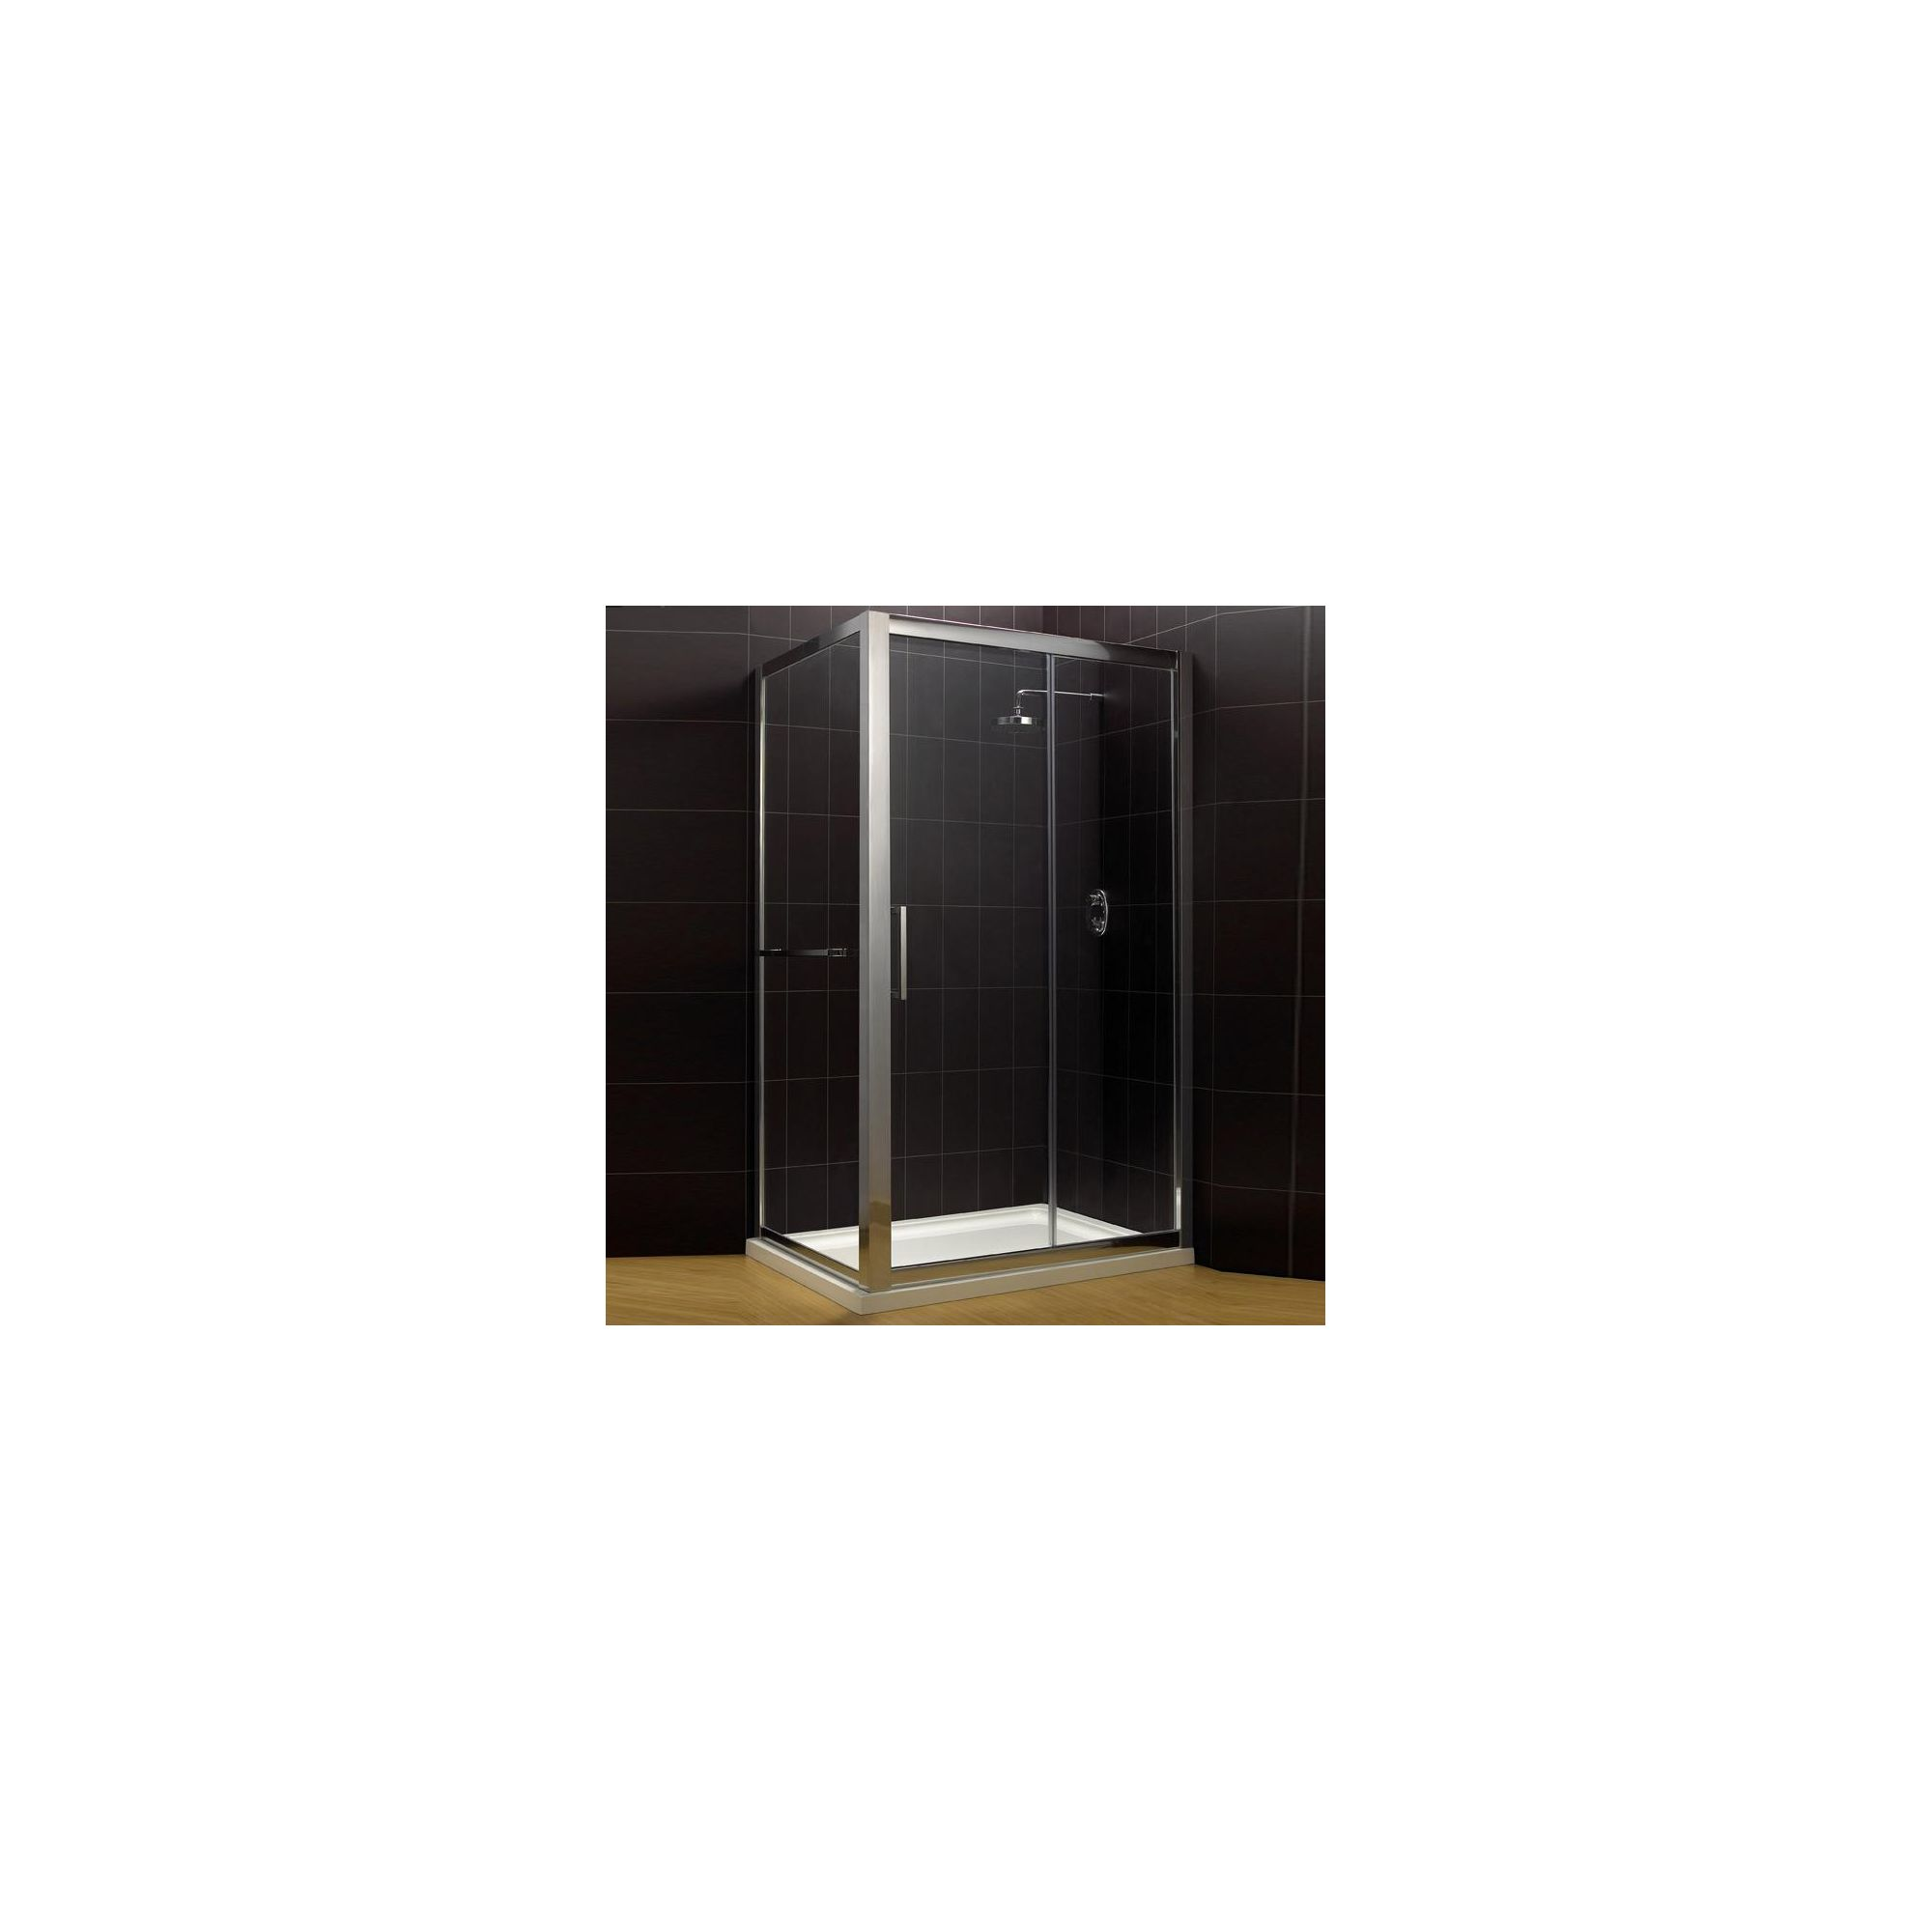 Duchy Supreme Silver Sliding Door Shower Enclosure with Towel Rail, 1700mm x 700mm, Standard Tray, 8mm Glass at Tesco Direct